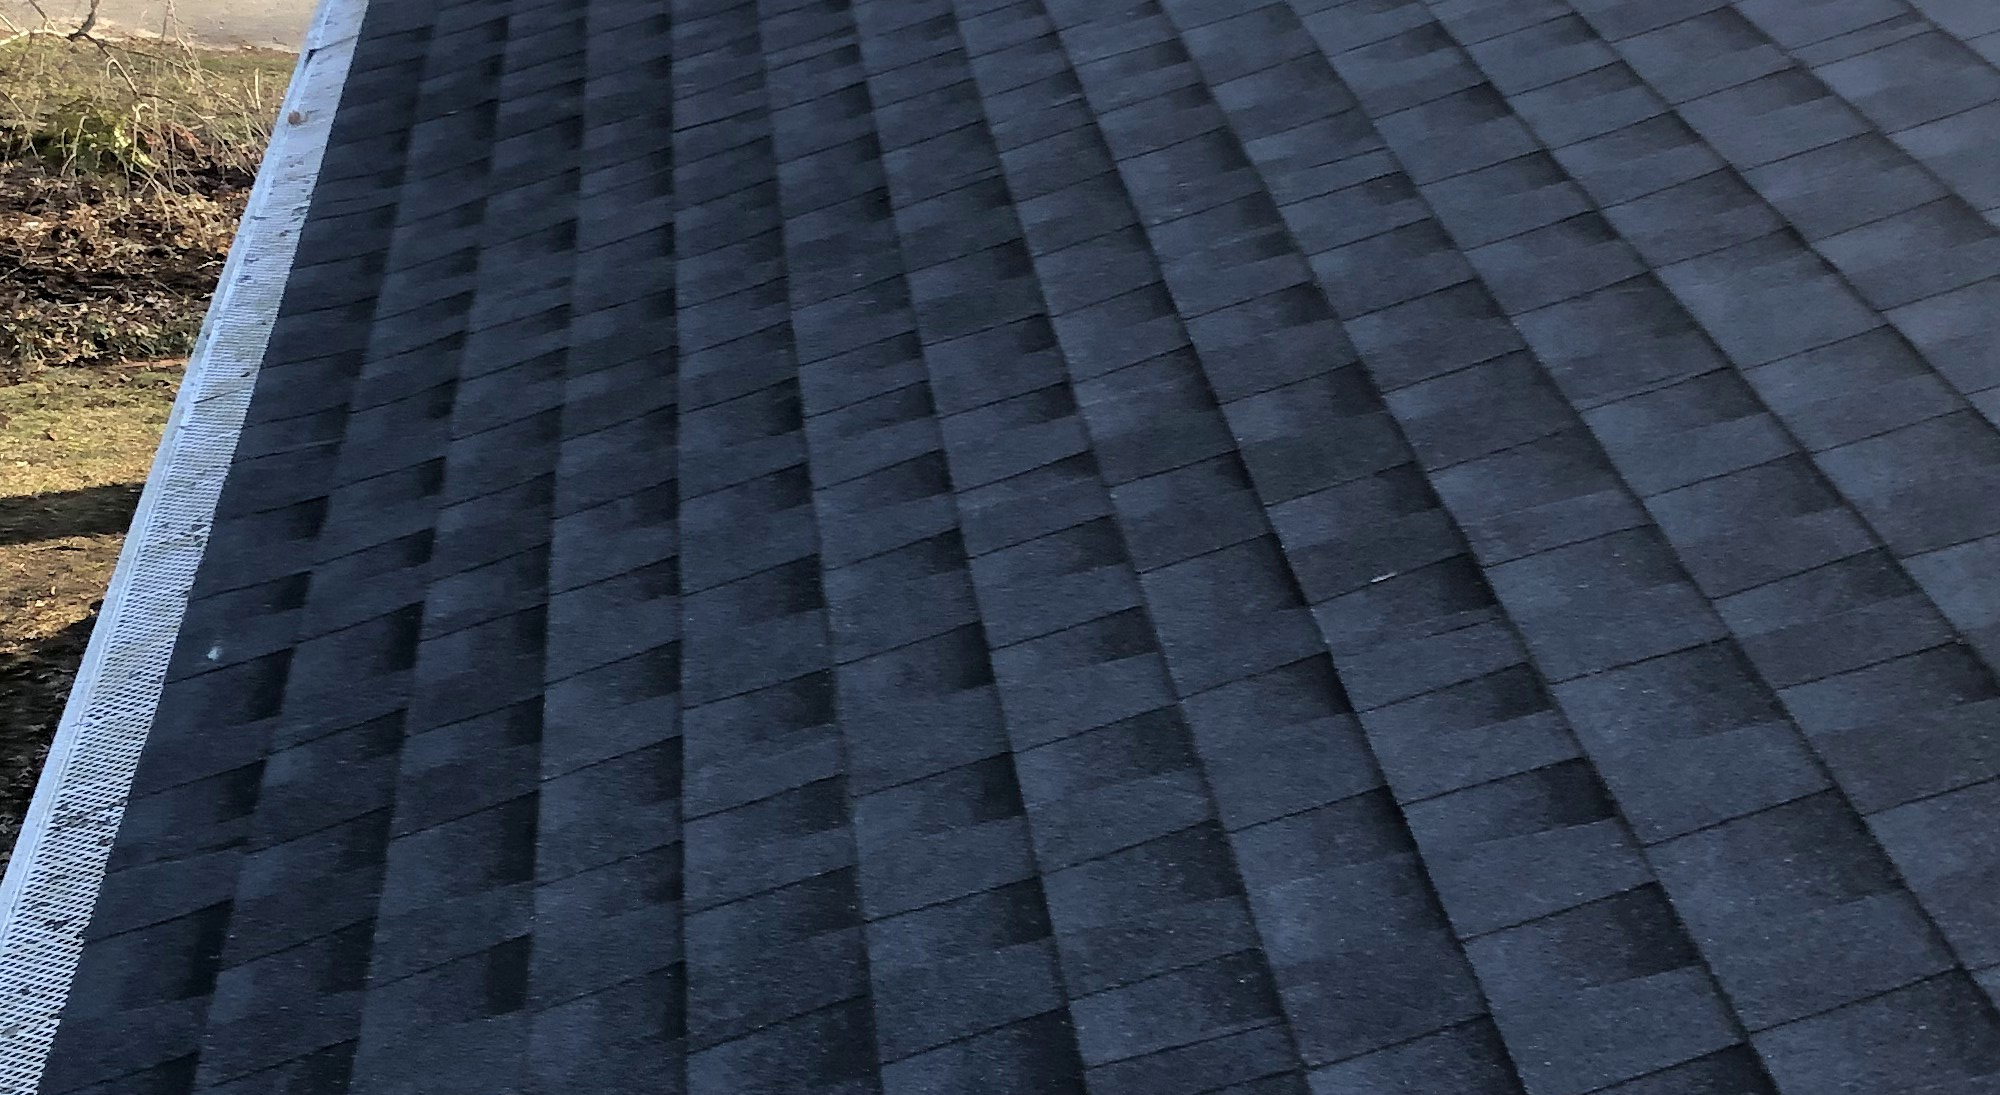 Kings Contrivance Roofers Repair and Replace